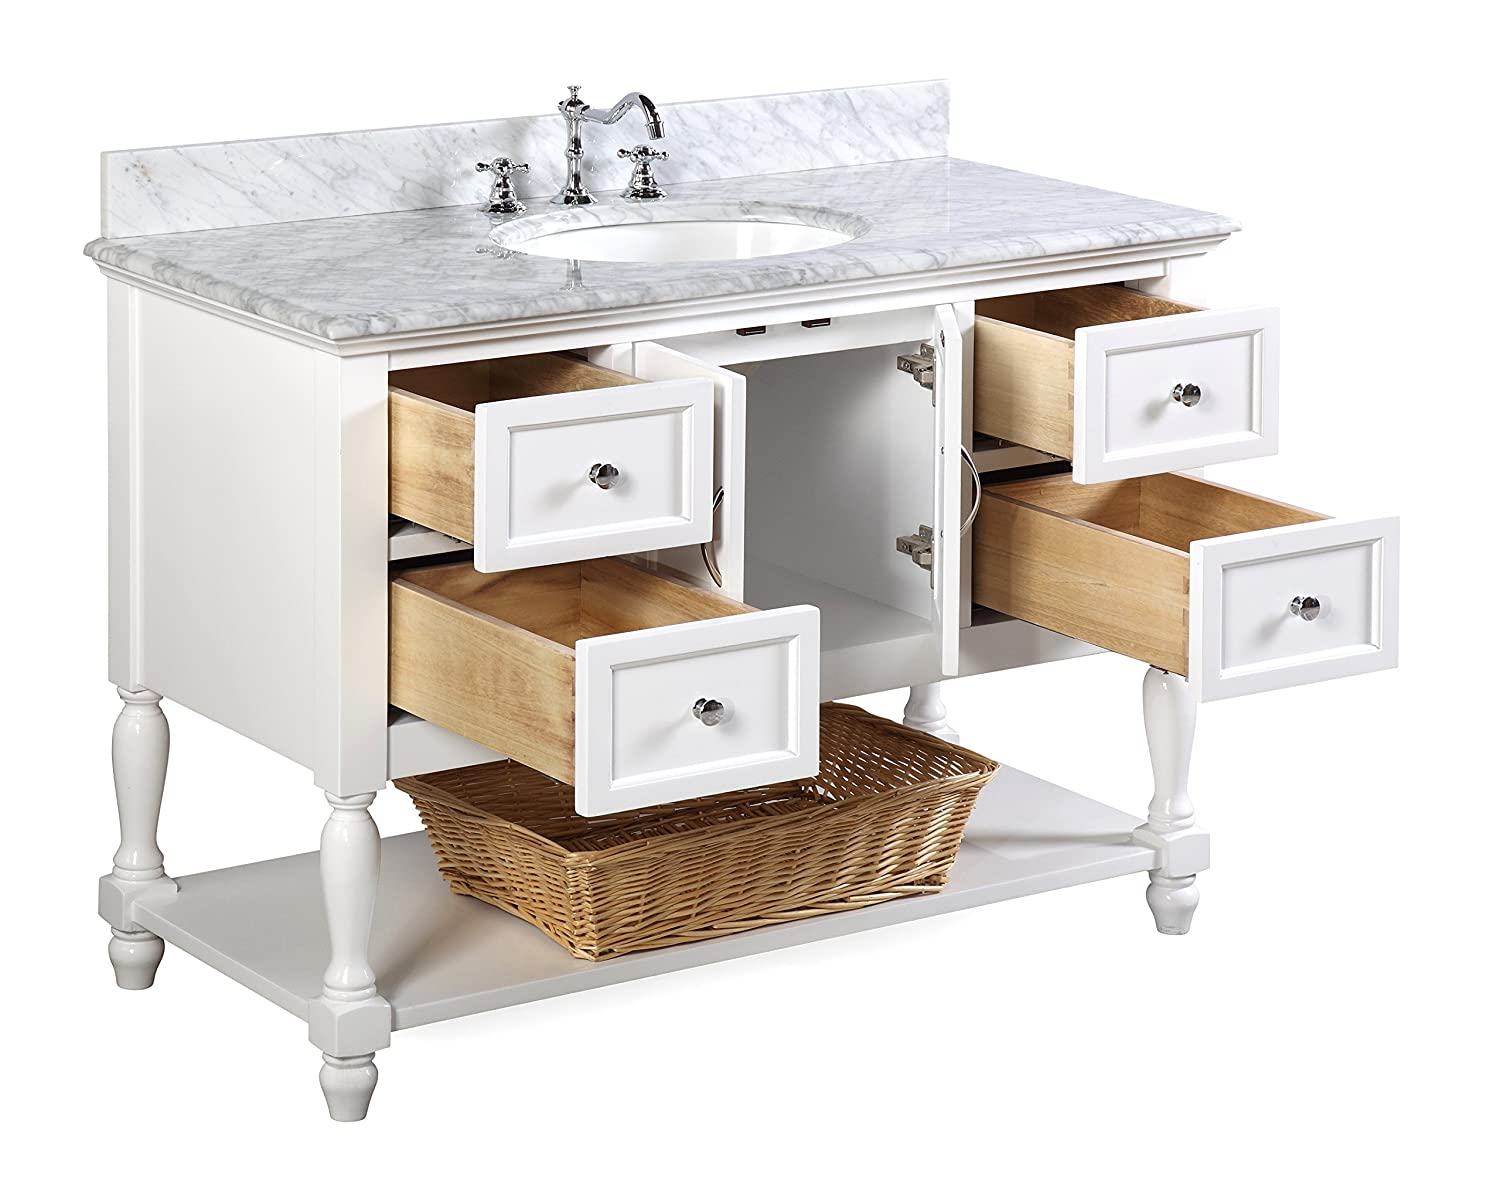 6985fba0d30 and White Ceramic Sink Kitchen Bath Collection KBC17WTCARR-N   Includes  Authentic Italian Carrara Marble Countertop Carrara White Beverly 48-inch  ...